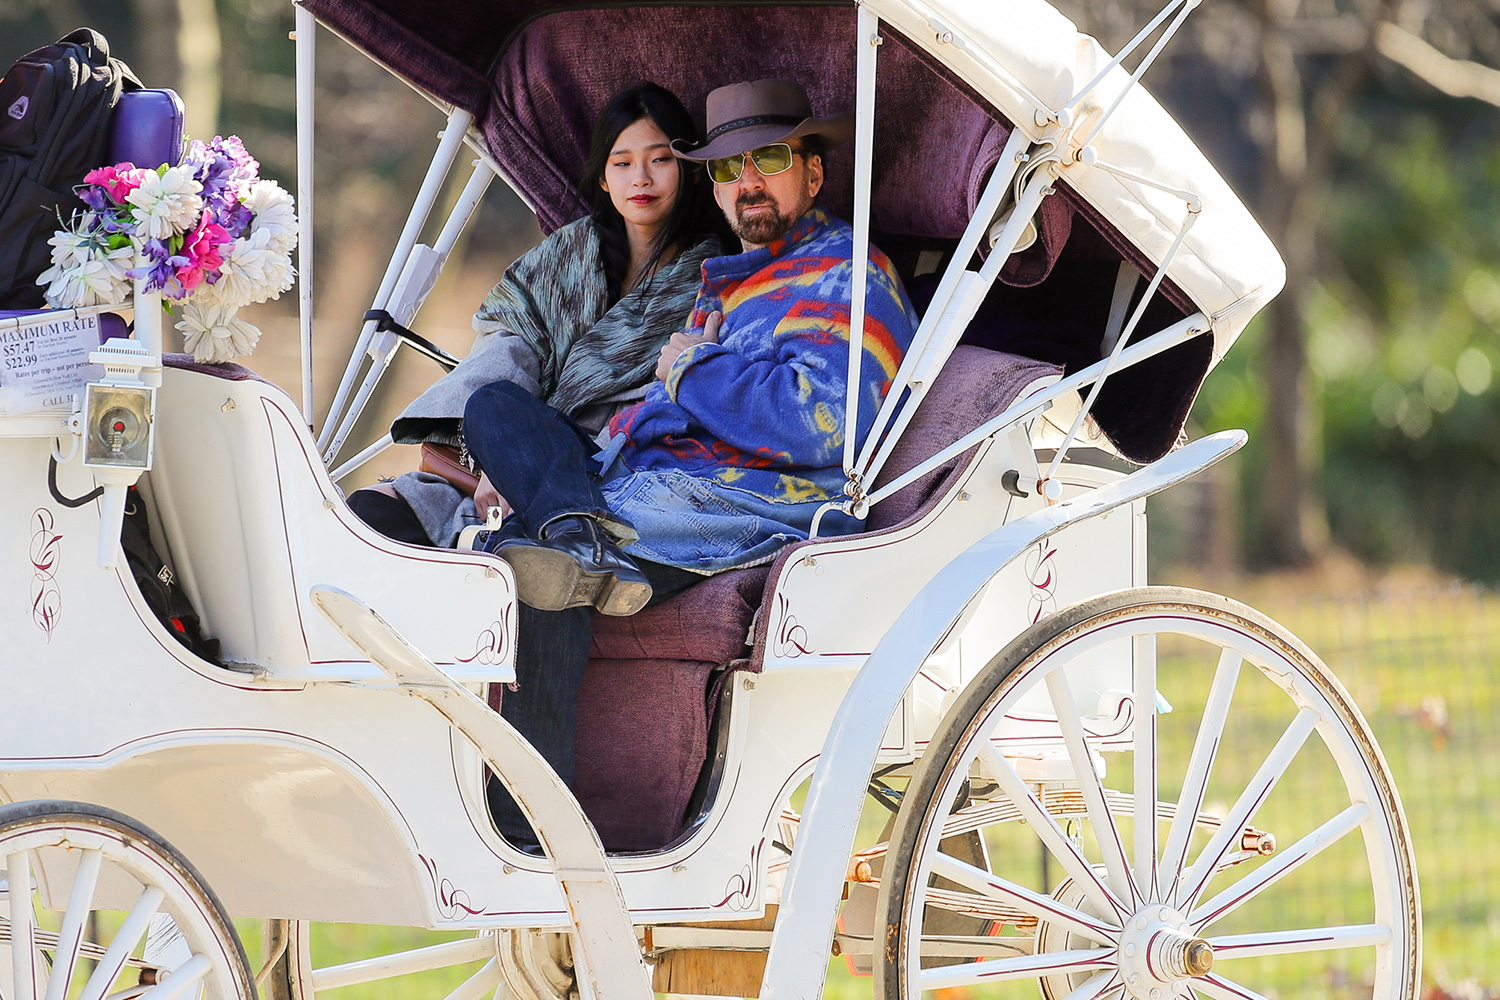 Nicolas Cage takes New Girlfriend Riko Shibata for a horse carriage ride in Central Park in New York City